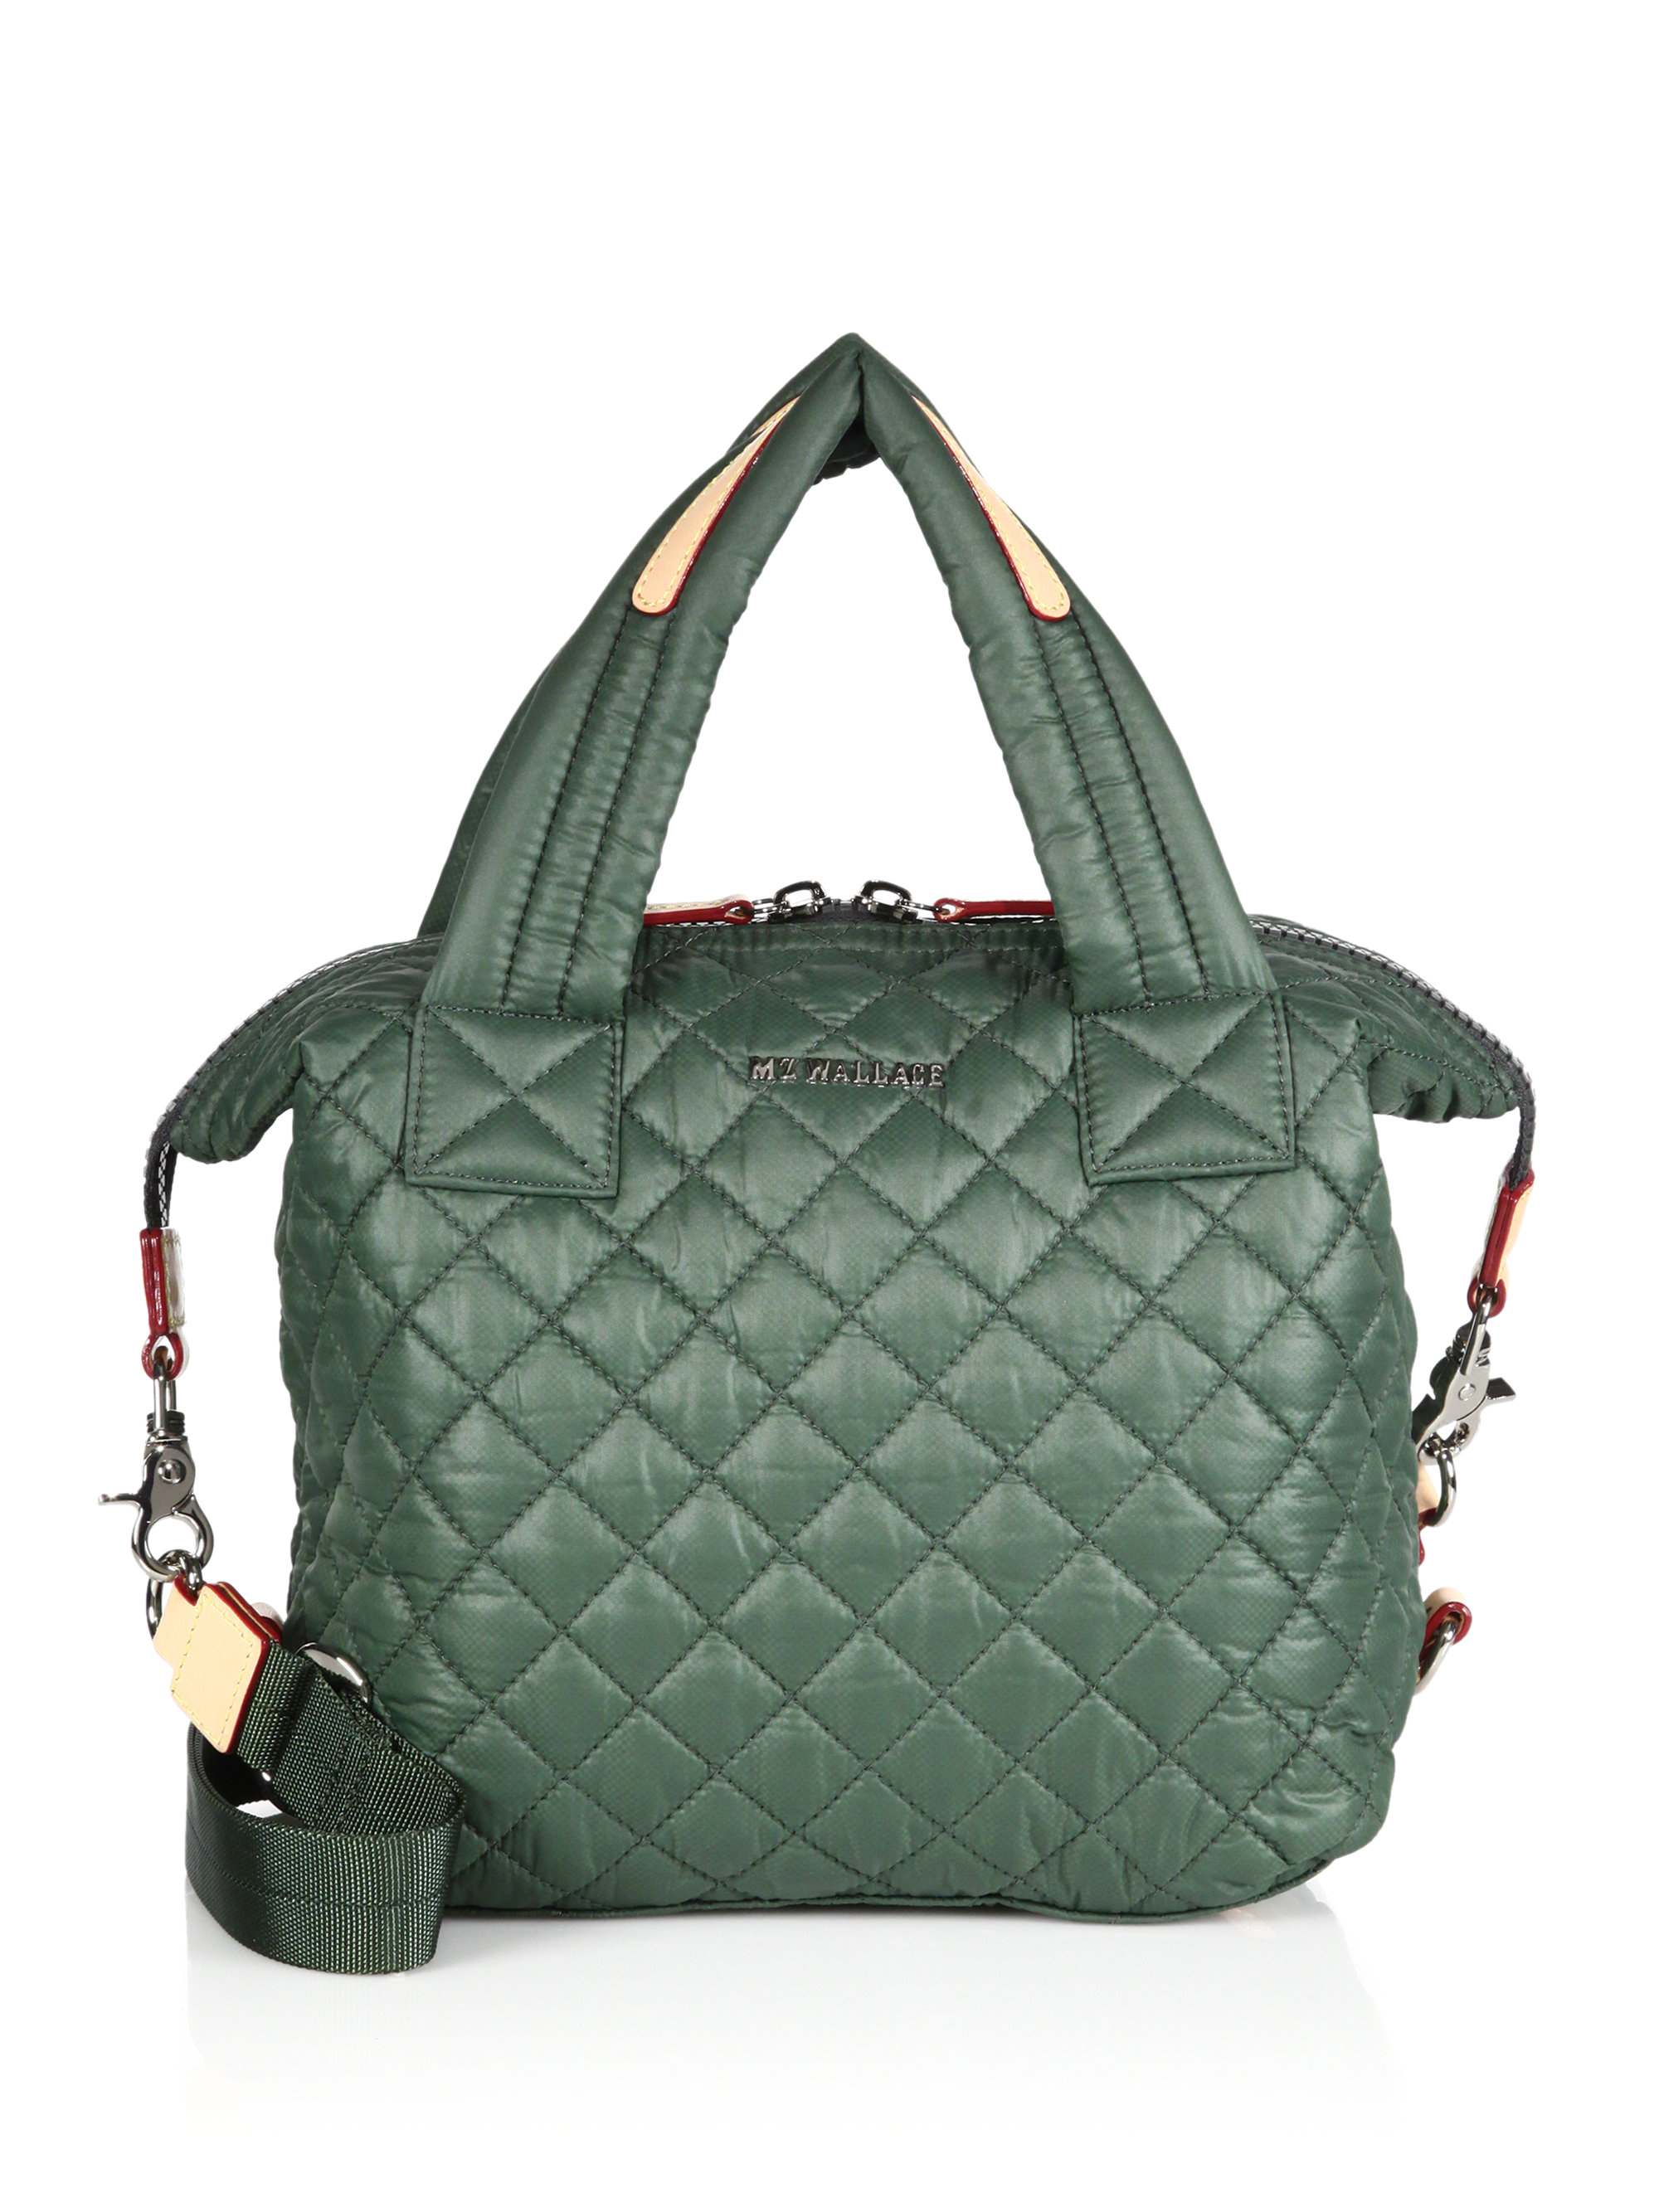 b394c73092 Lyst Mz Wallace Sutton Small Quilted Nylon Tote In Green. Prada Medium Quilted  Nylon Tote Bag Navy Blue